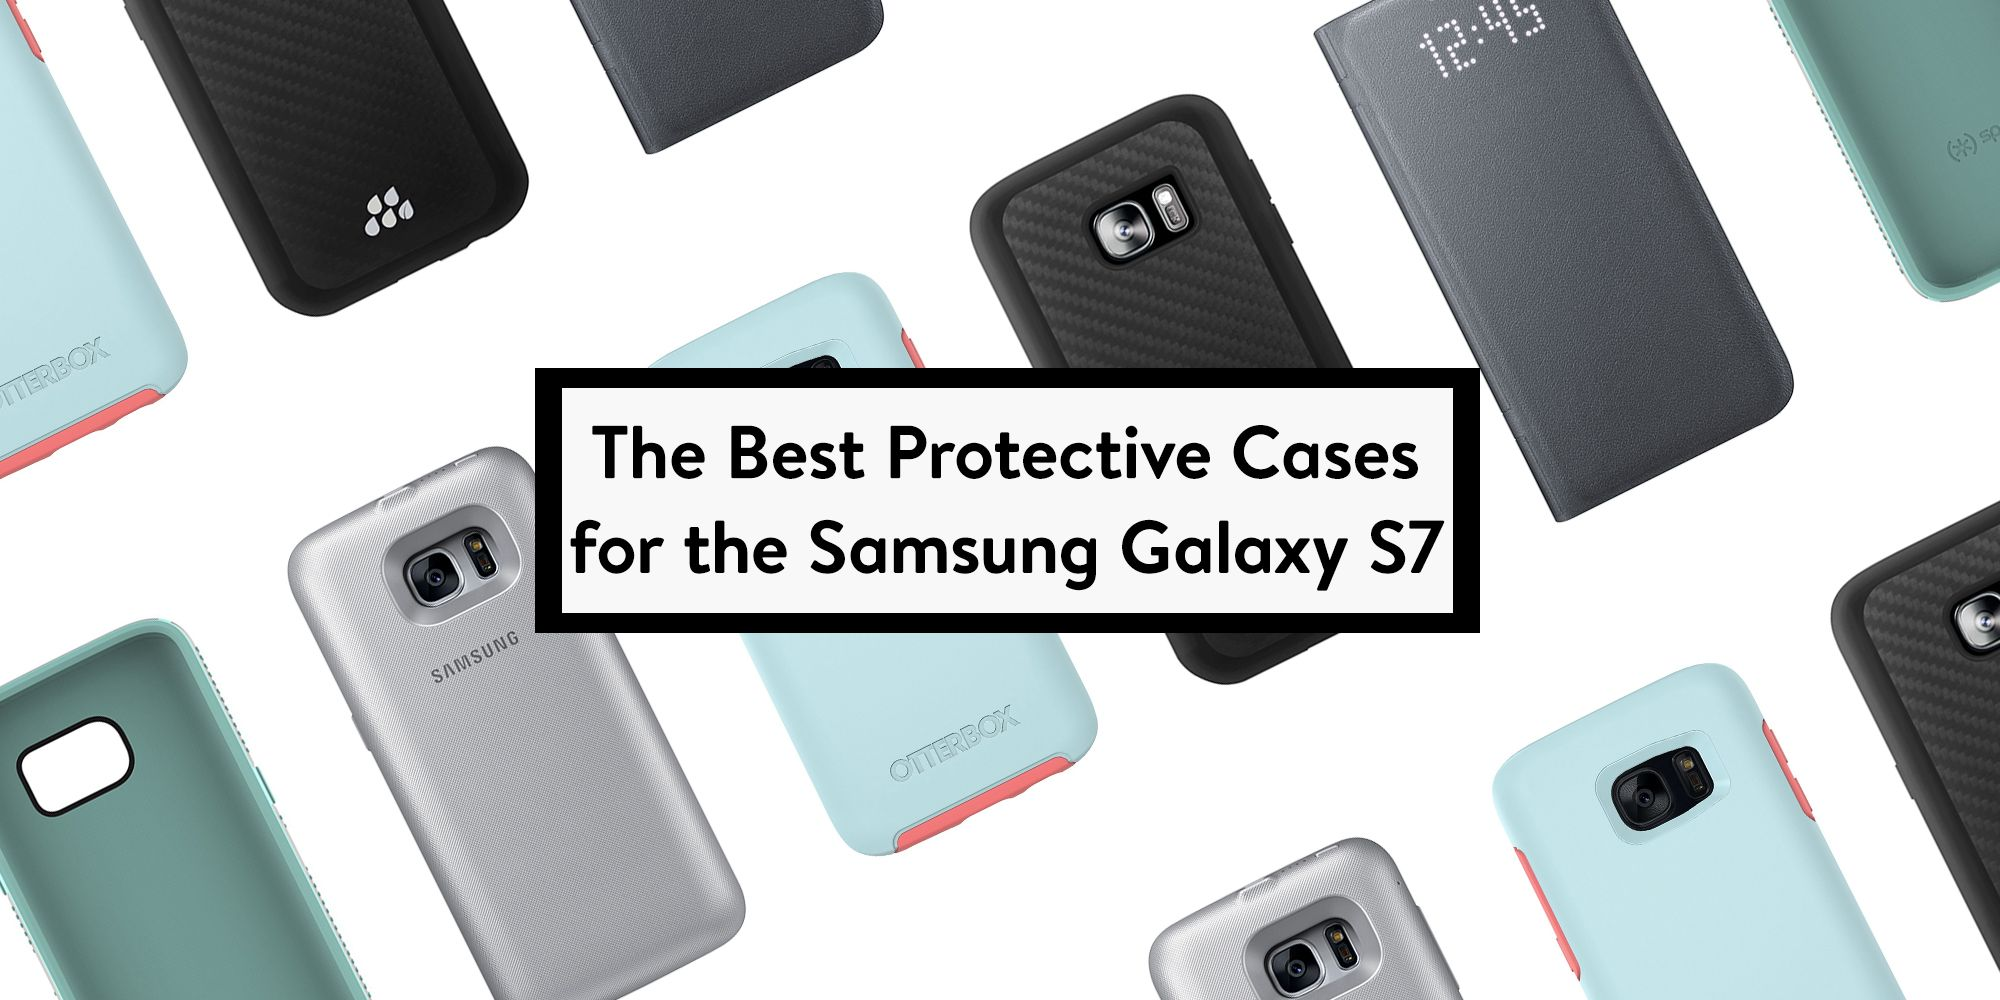 10 Best Samsung Galaxy S7 Cases in 2018 - Protective Samsung Galaxy